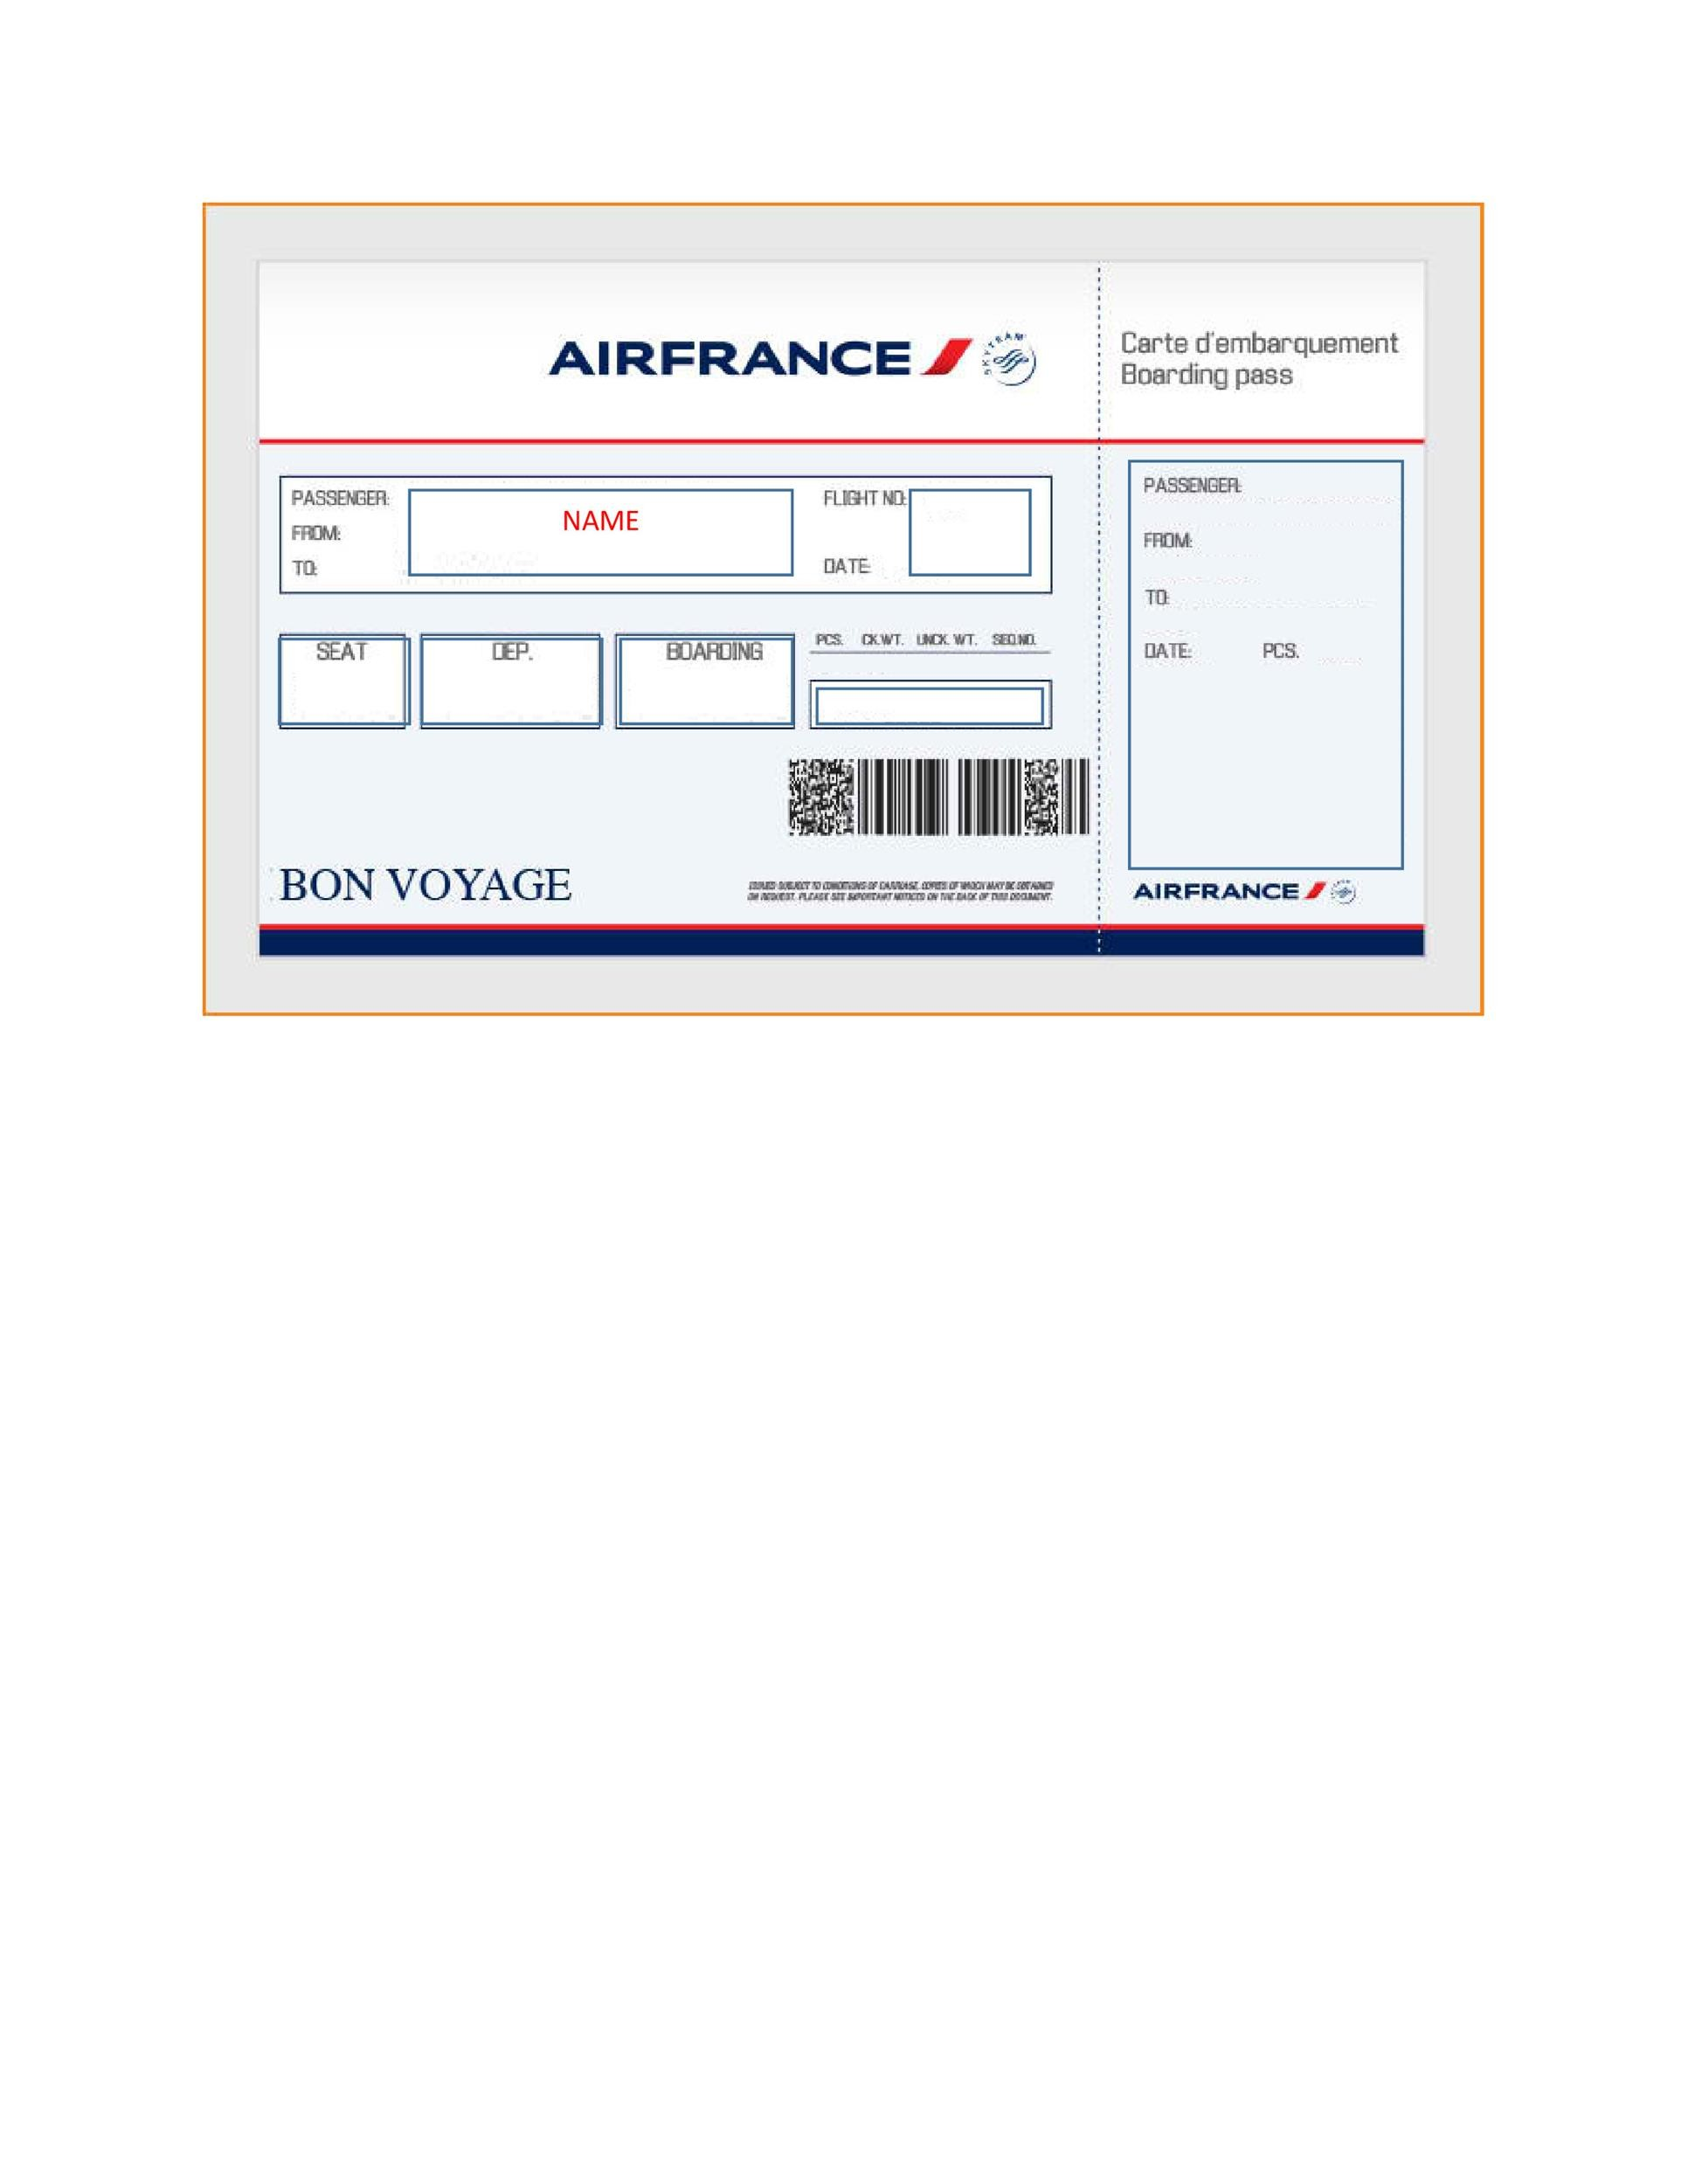 Free boarding pass template 16